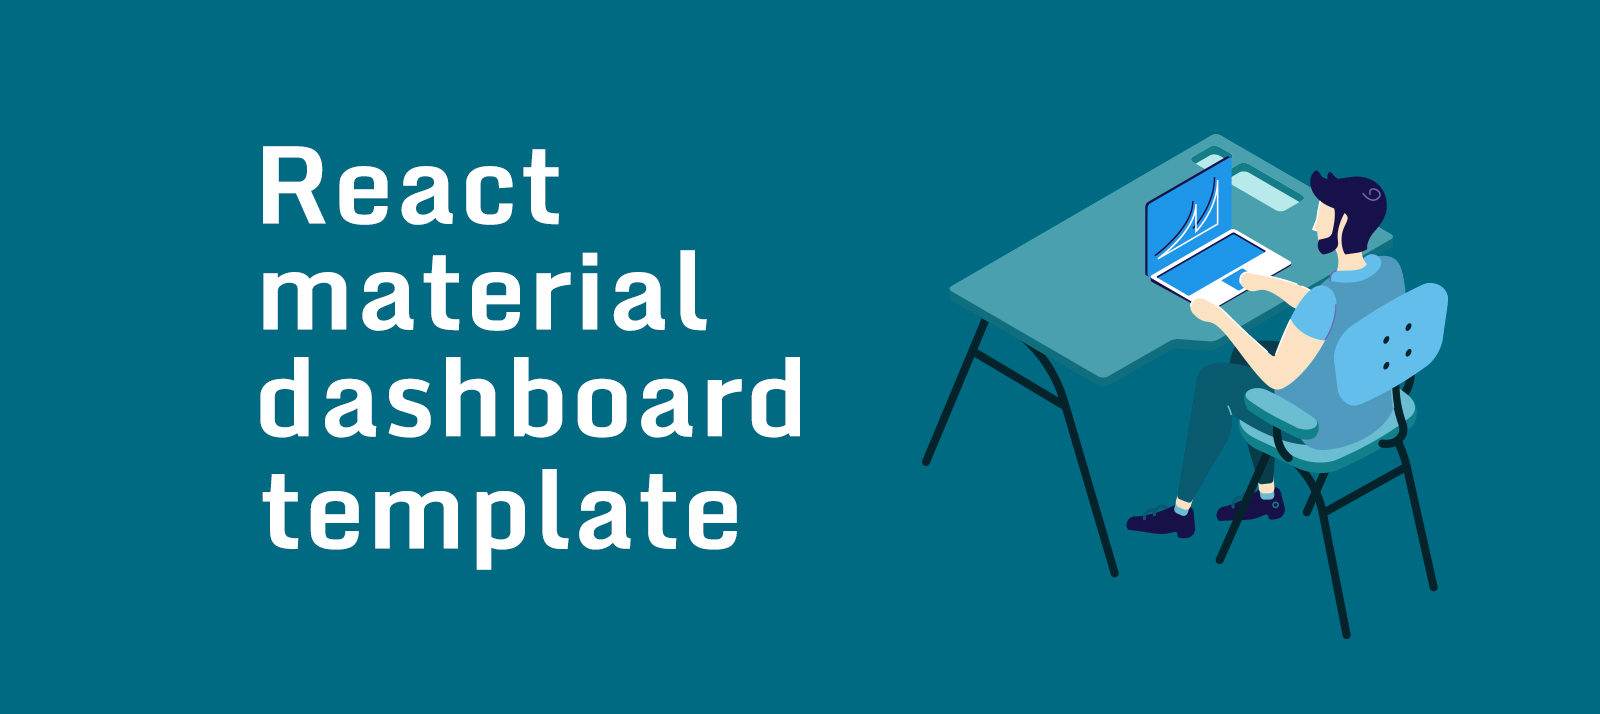 Best React Material Dashboard Templates Sure to Make a Big Impact in 2020